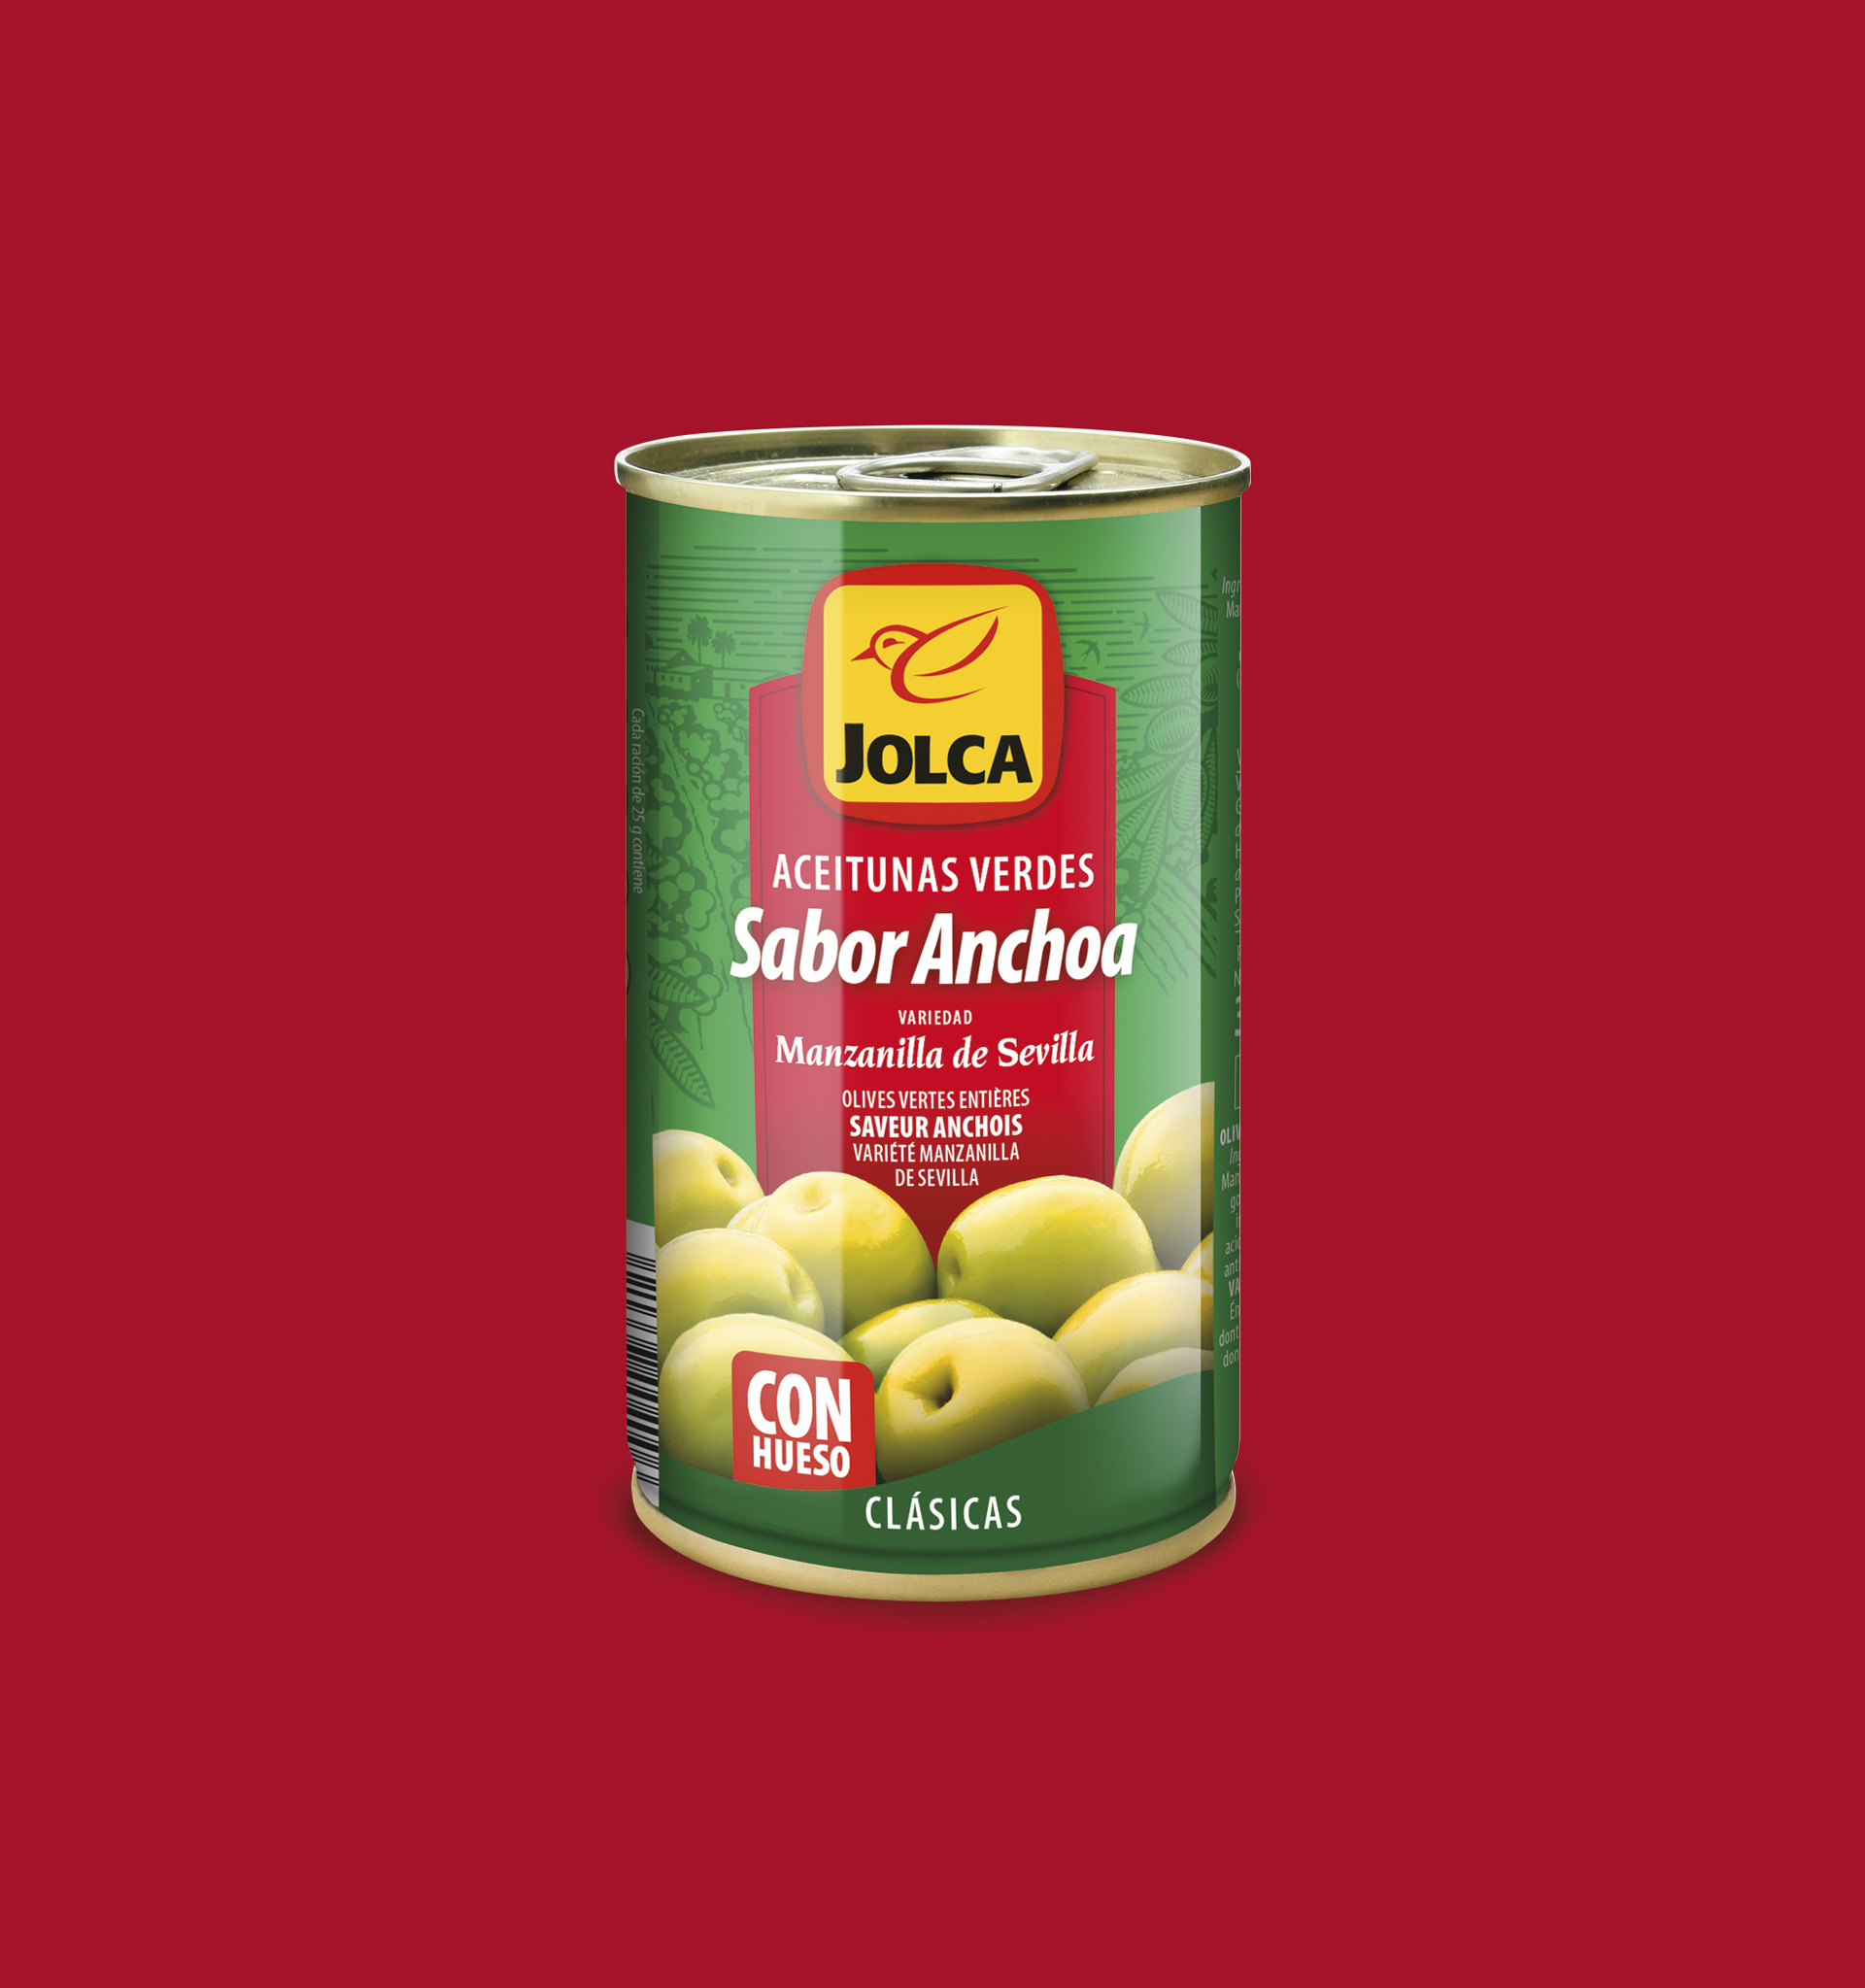 Restyling del packaging de Jolca Oficina de Arte